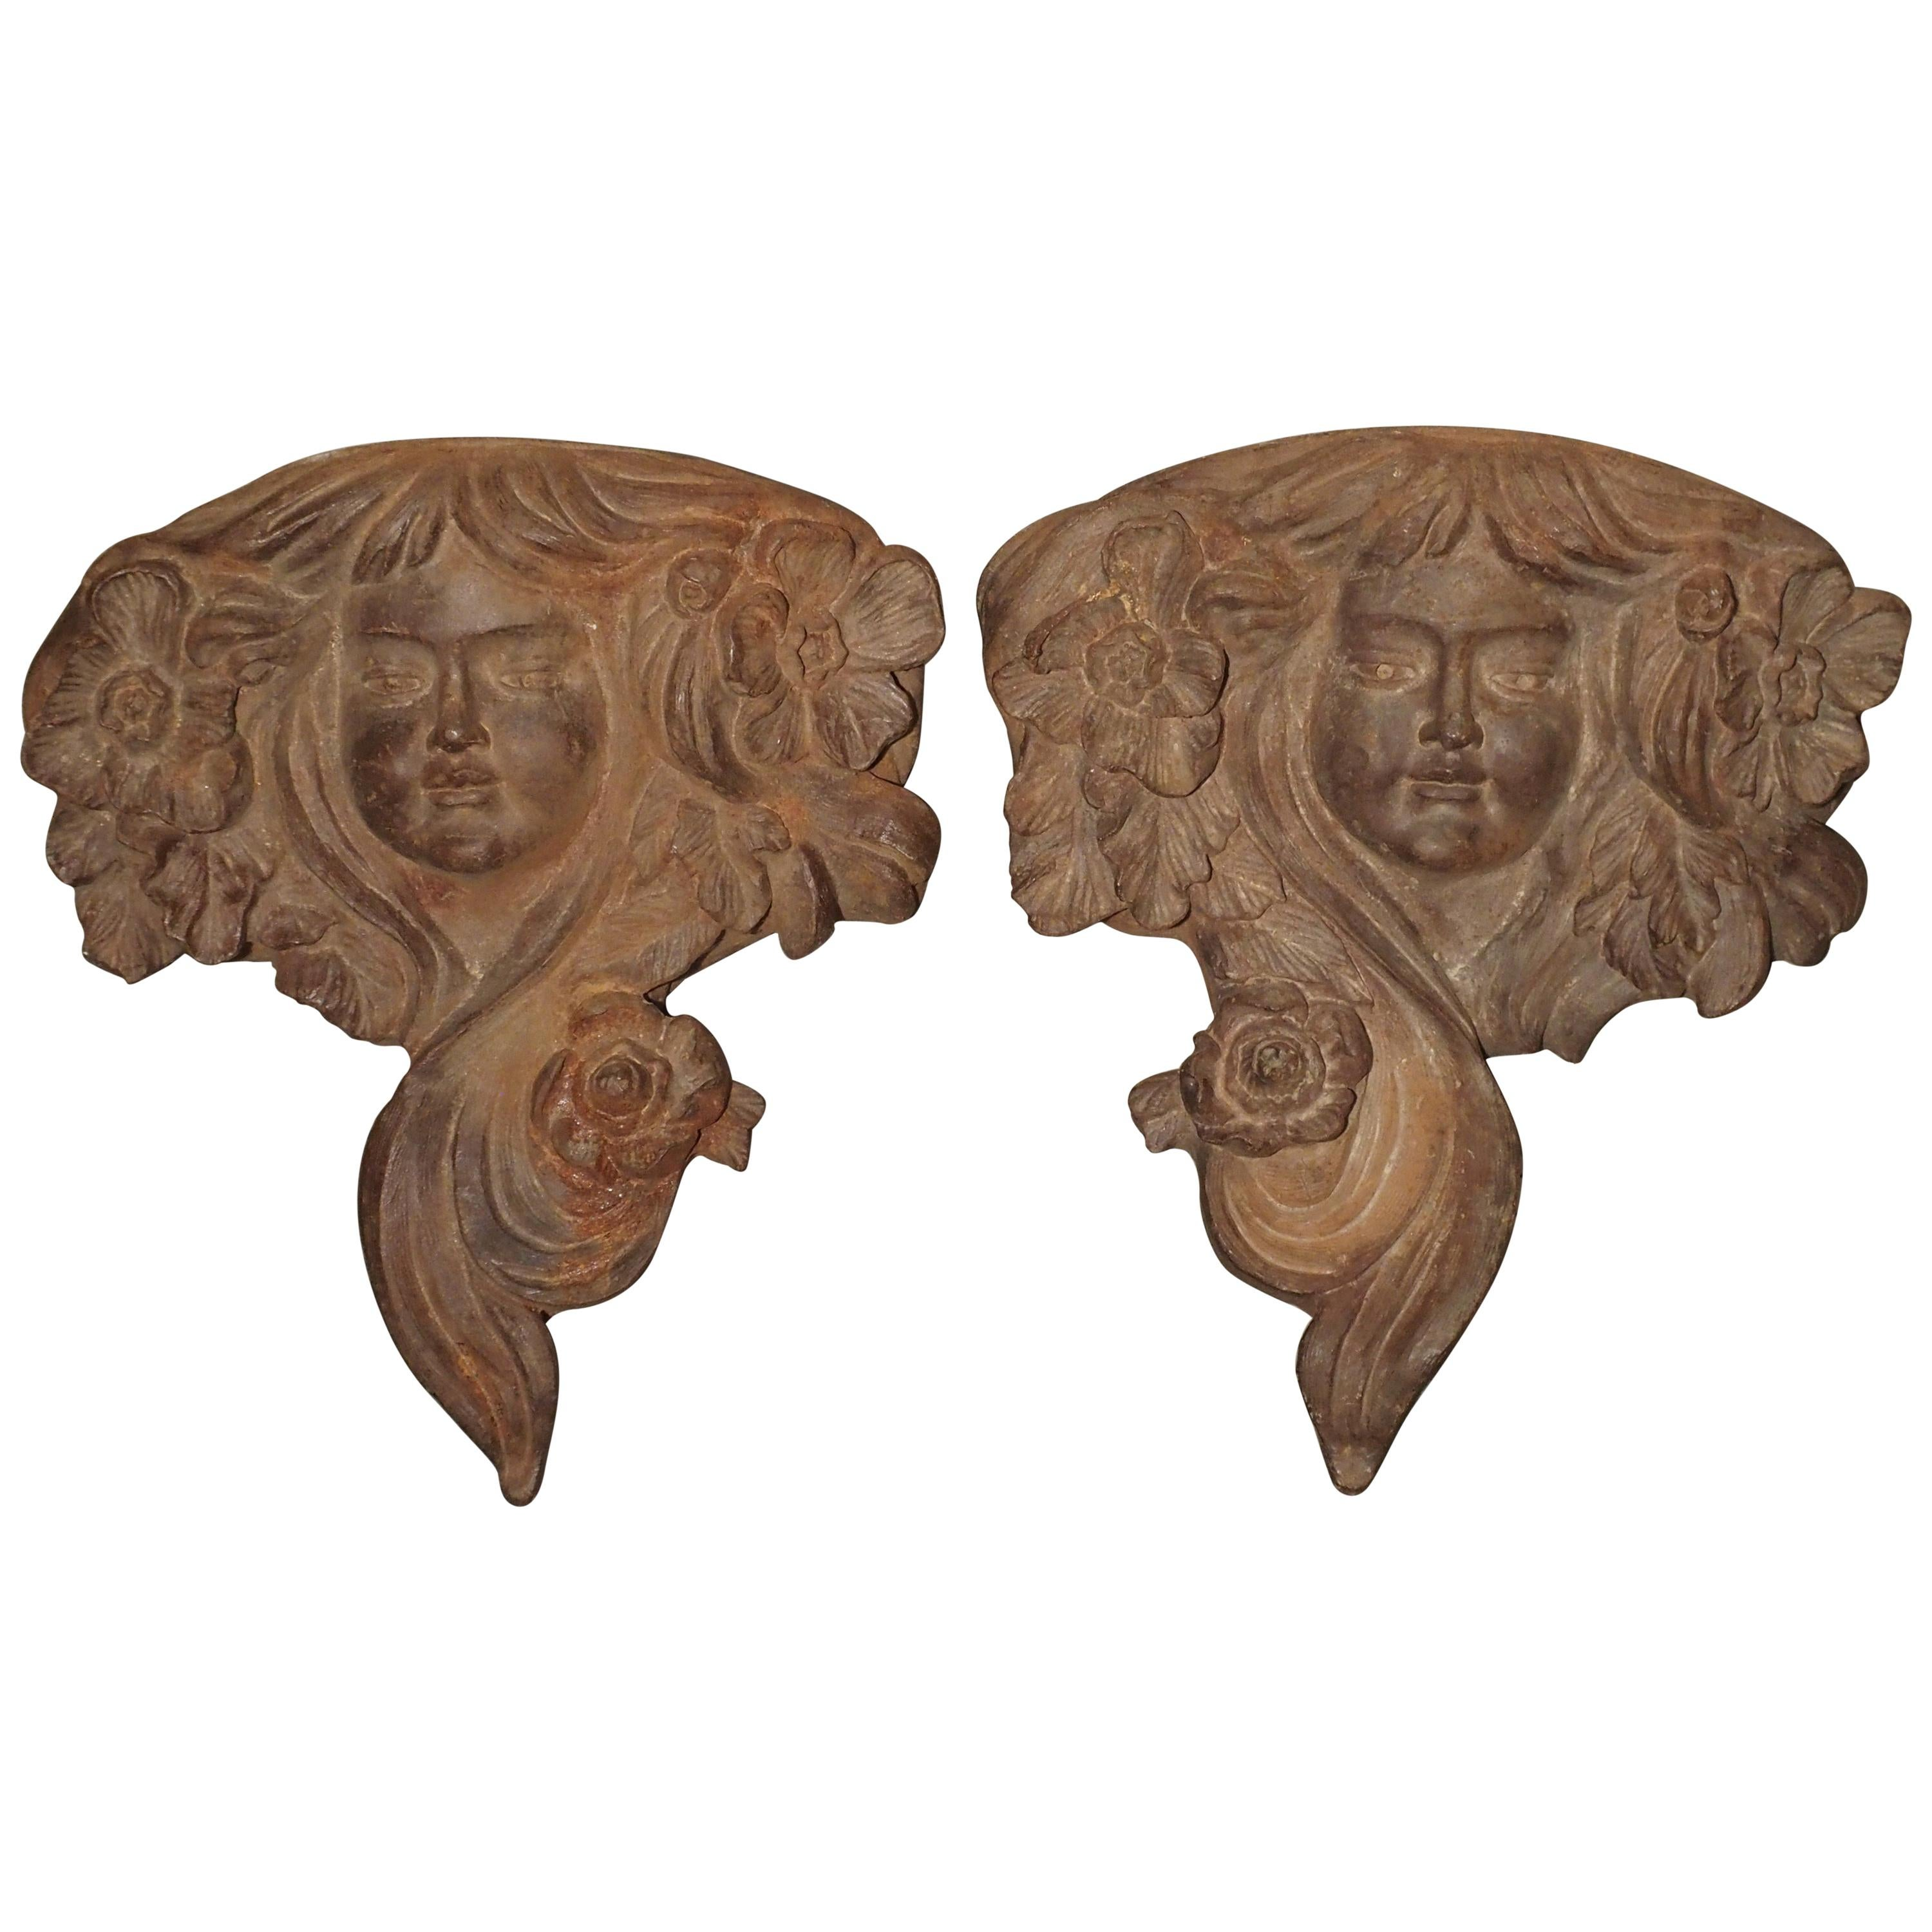 Pair of Antique French Cast Iron Balcony Planters/Ornaments, circa 1900